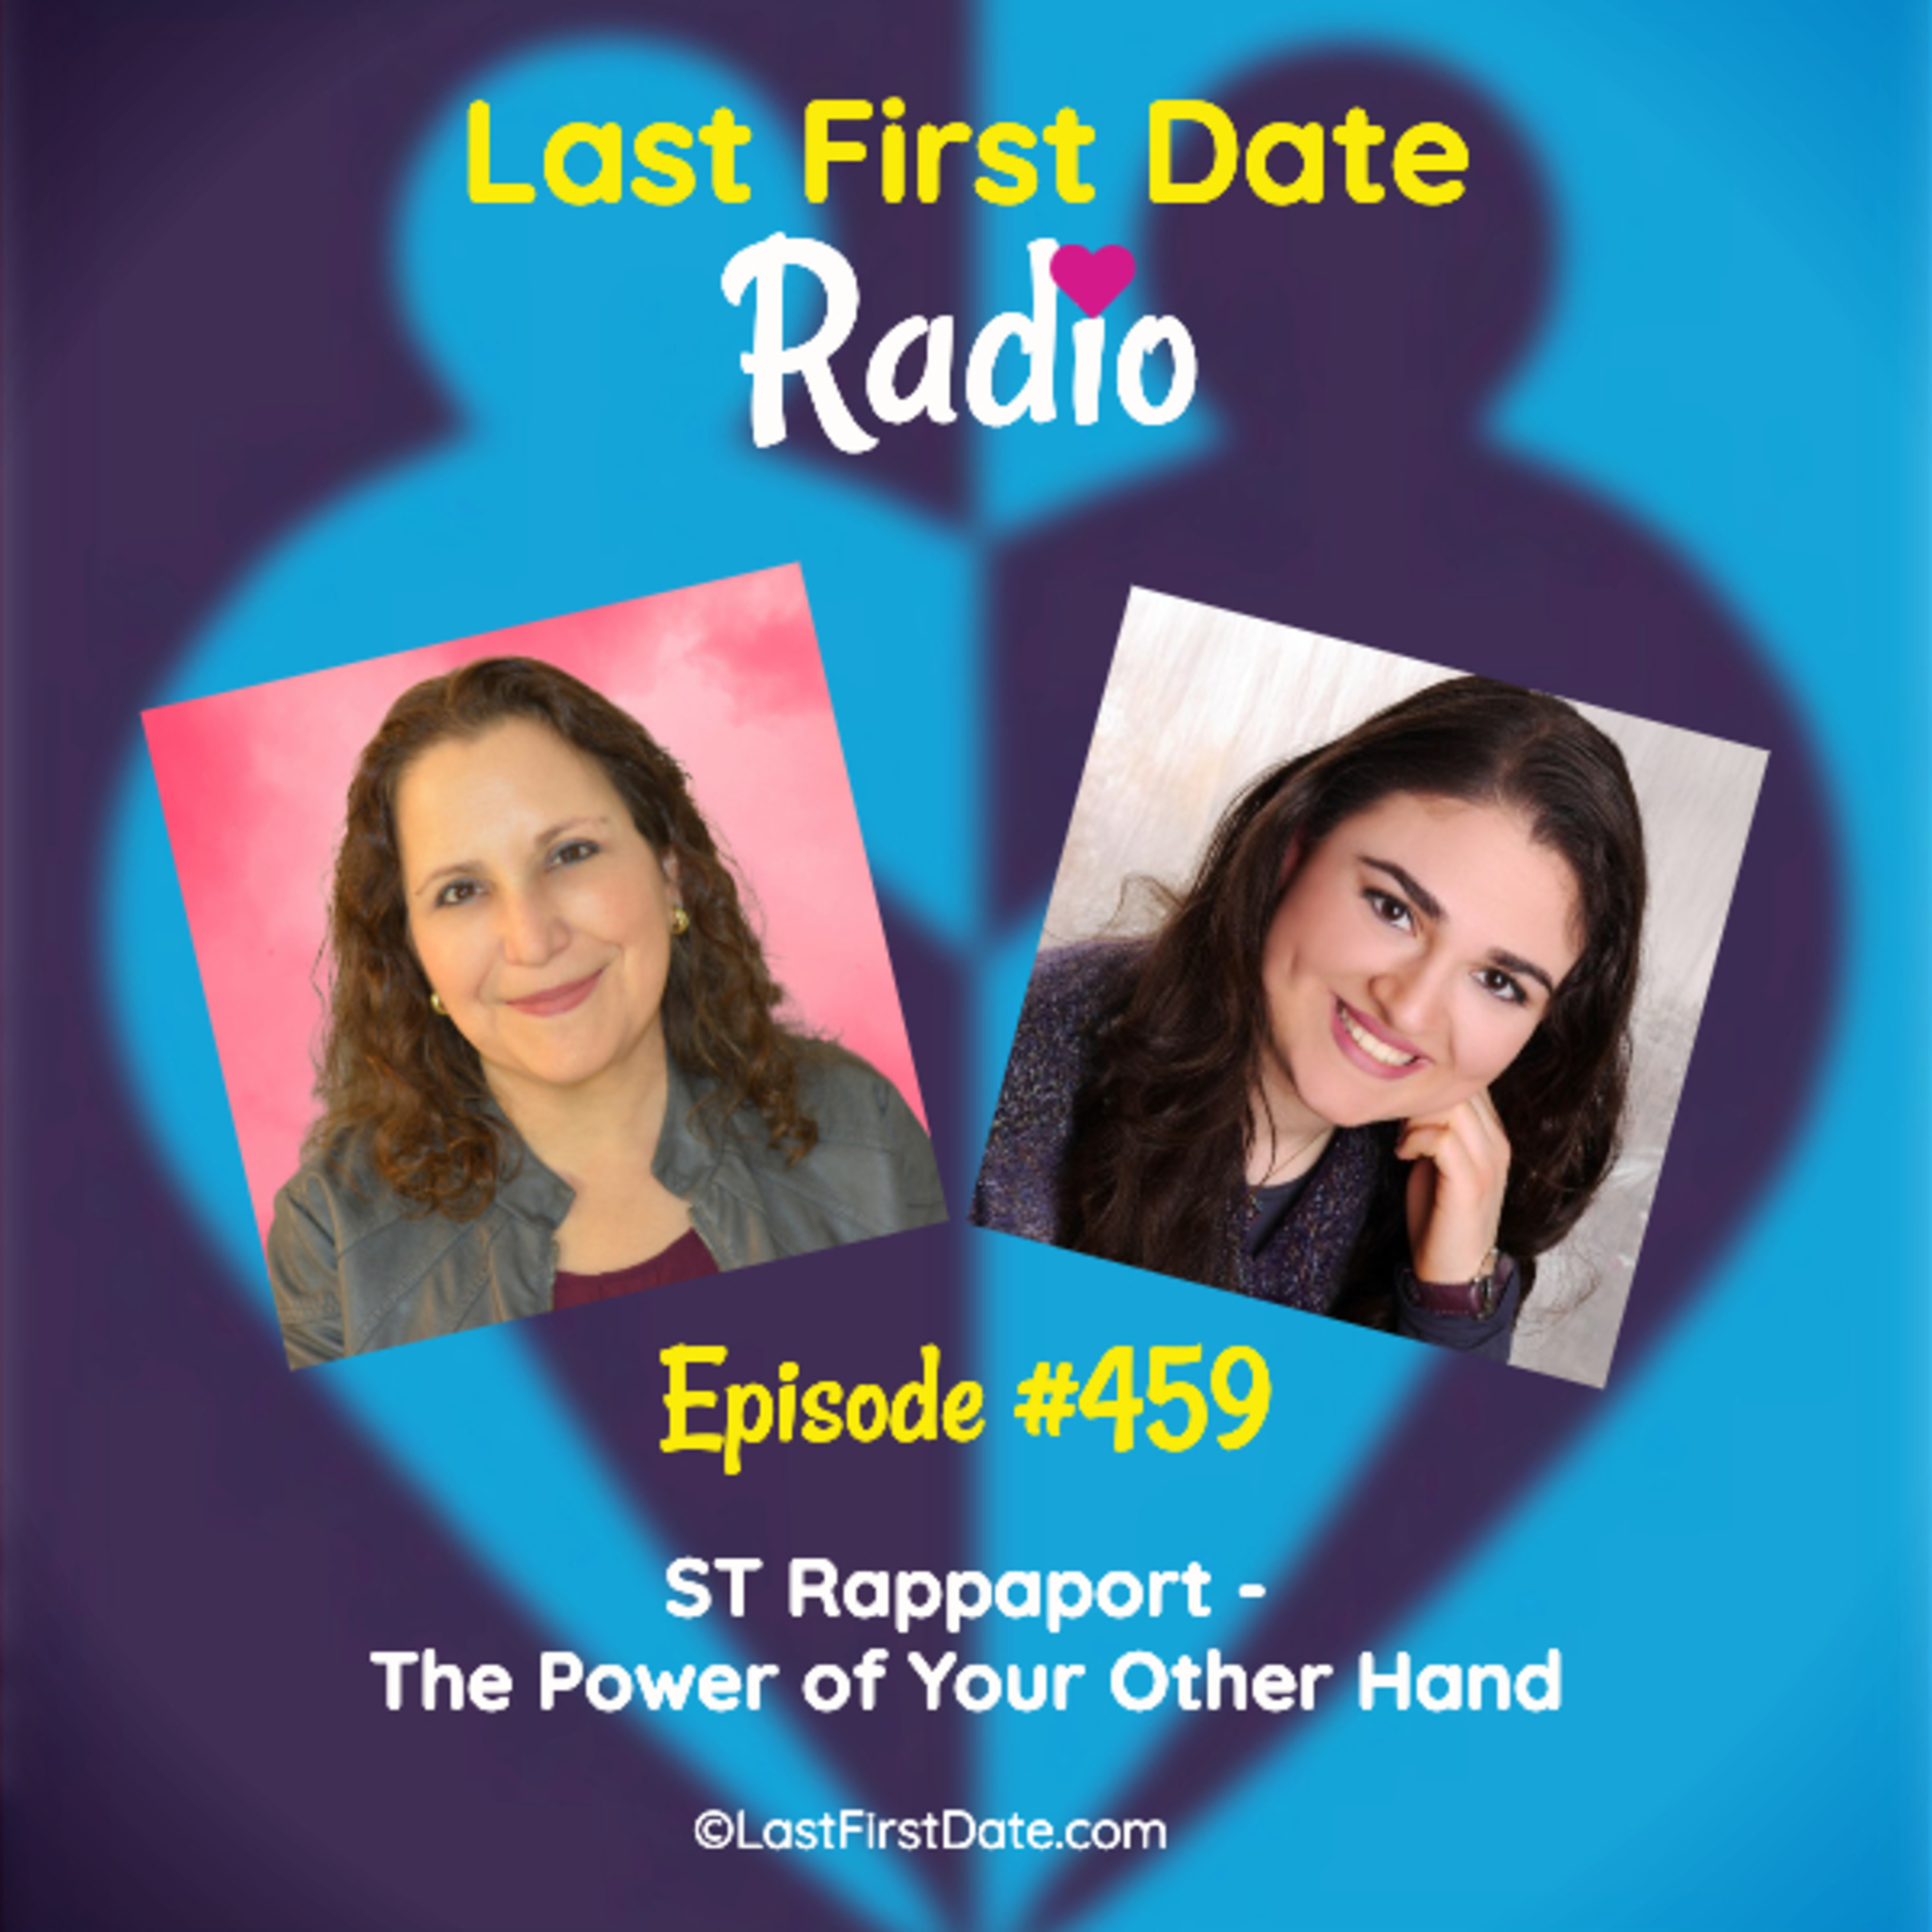 Last First Date Radio - EP 459: ST Rappaport - The Power of Your Other Hand